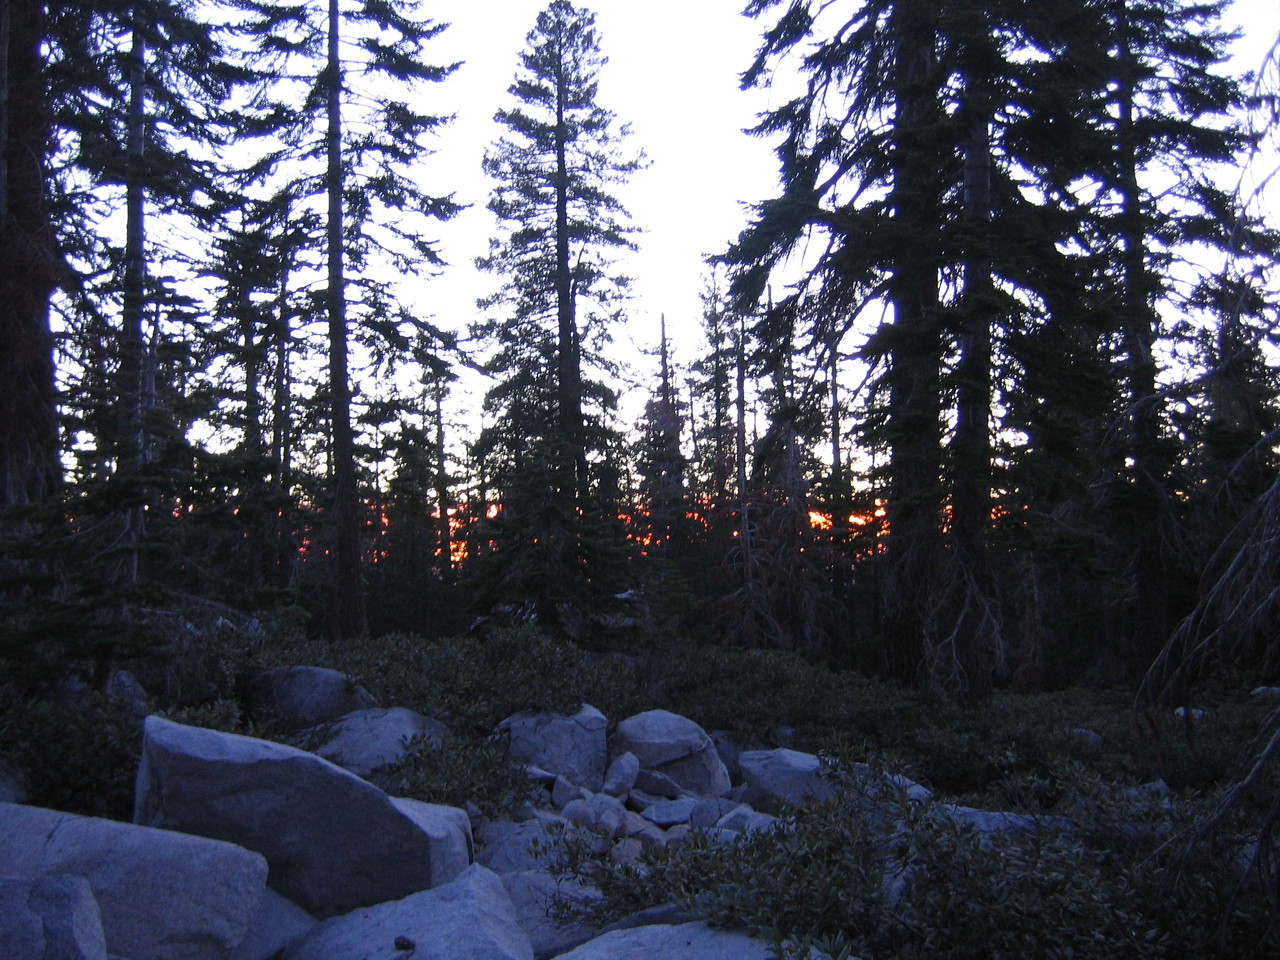 Sunset through the woods.